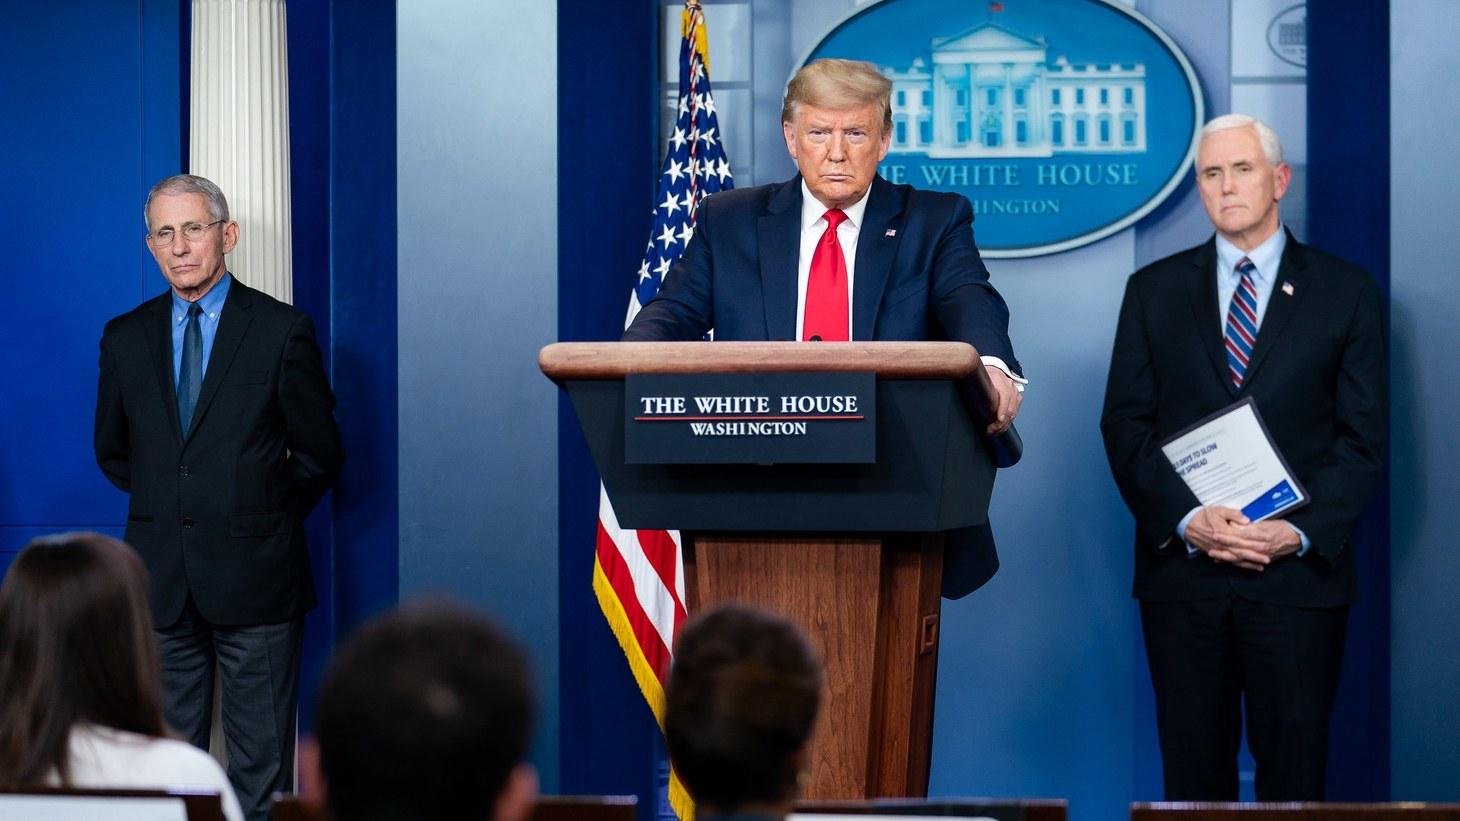 President Donald J. Trump, joined by Vice President Mike Pence and members of the White House Coronavirus Task Force, listens to a reporter's question at the coronavirus (COVID-19) update briefing Thursday, March 26, 2020.